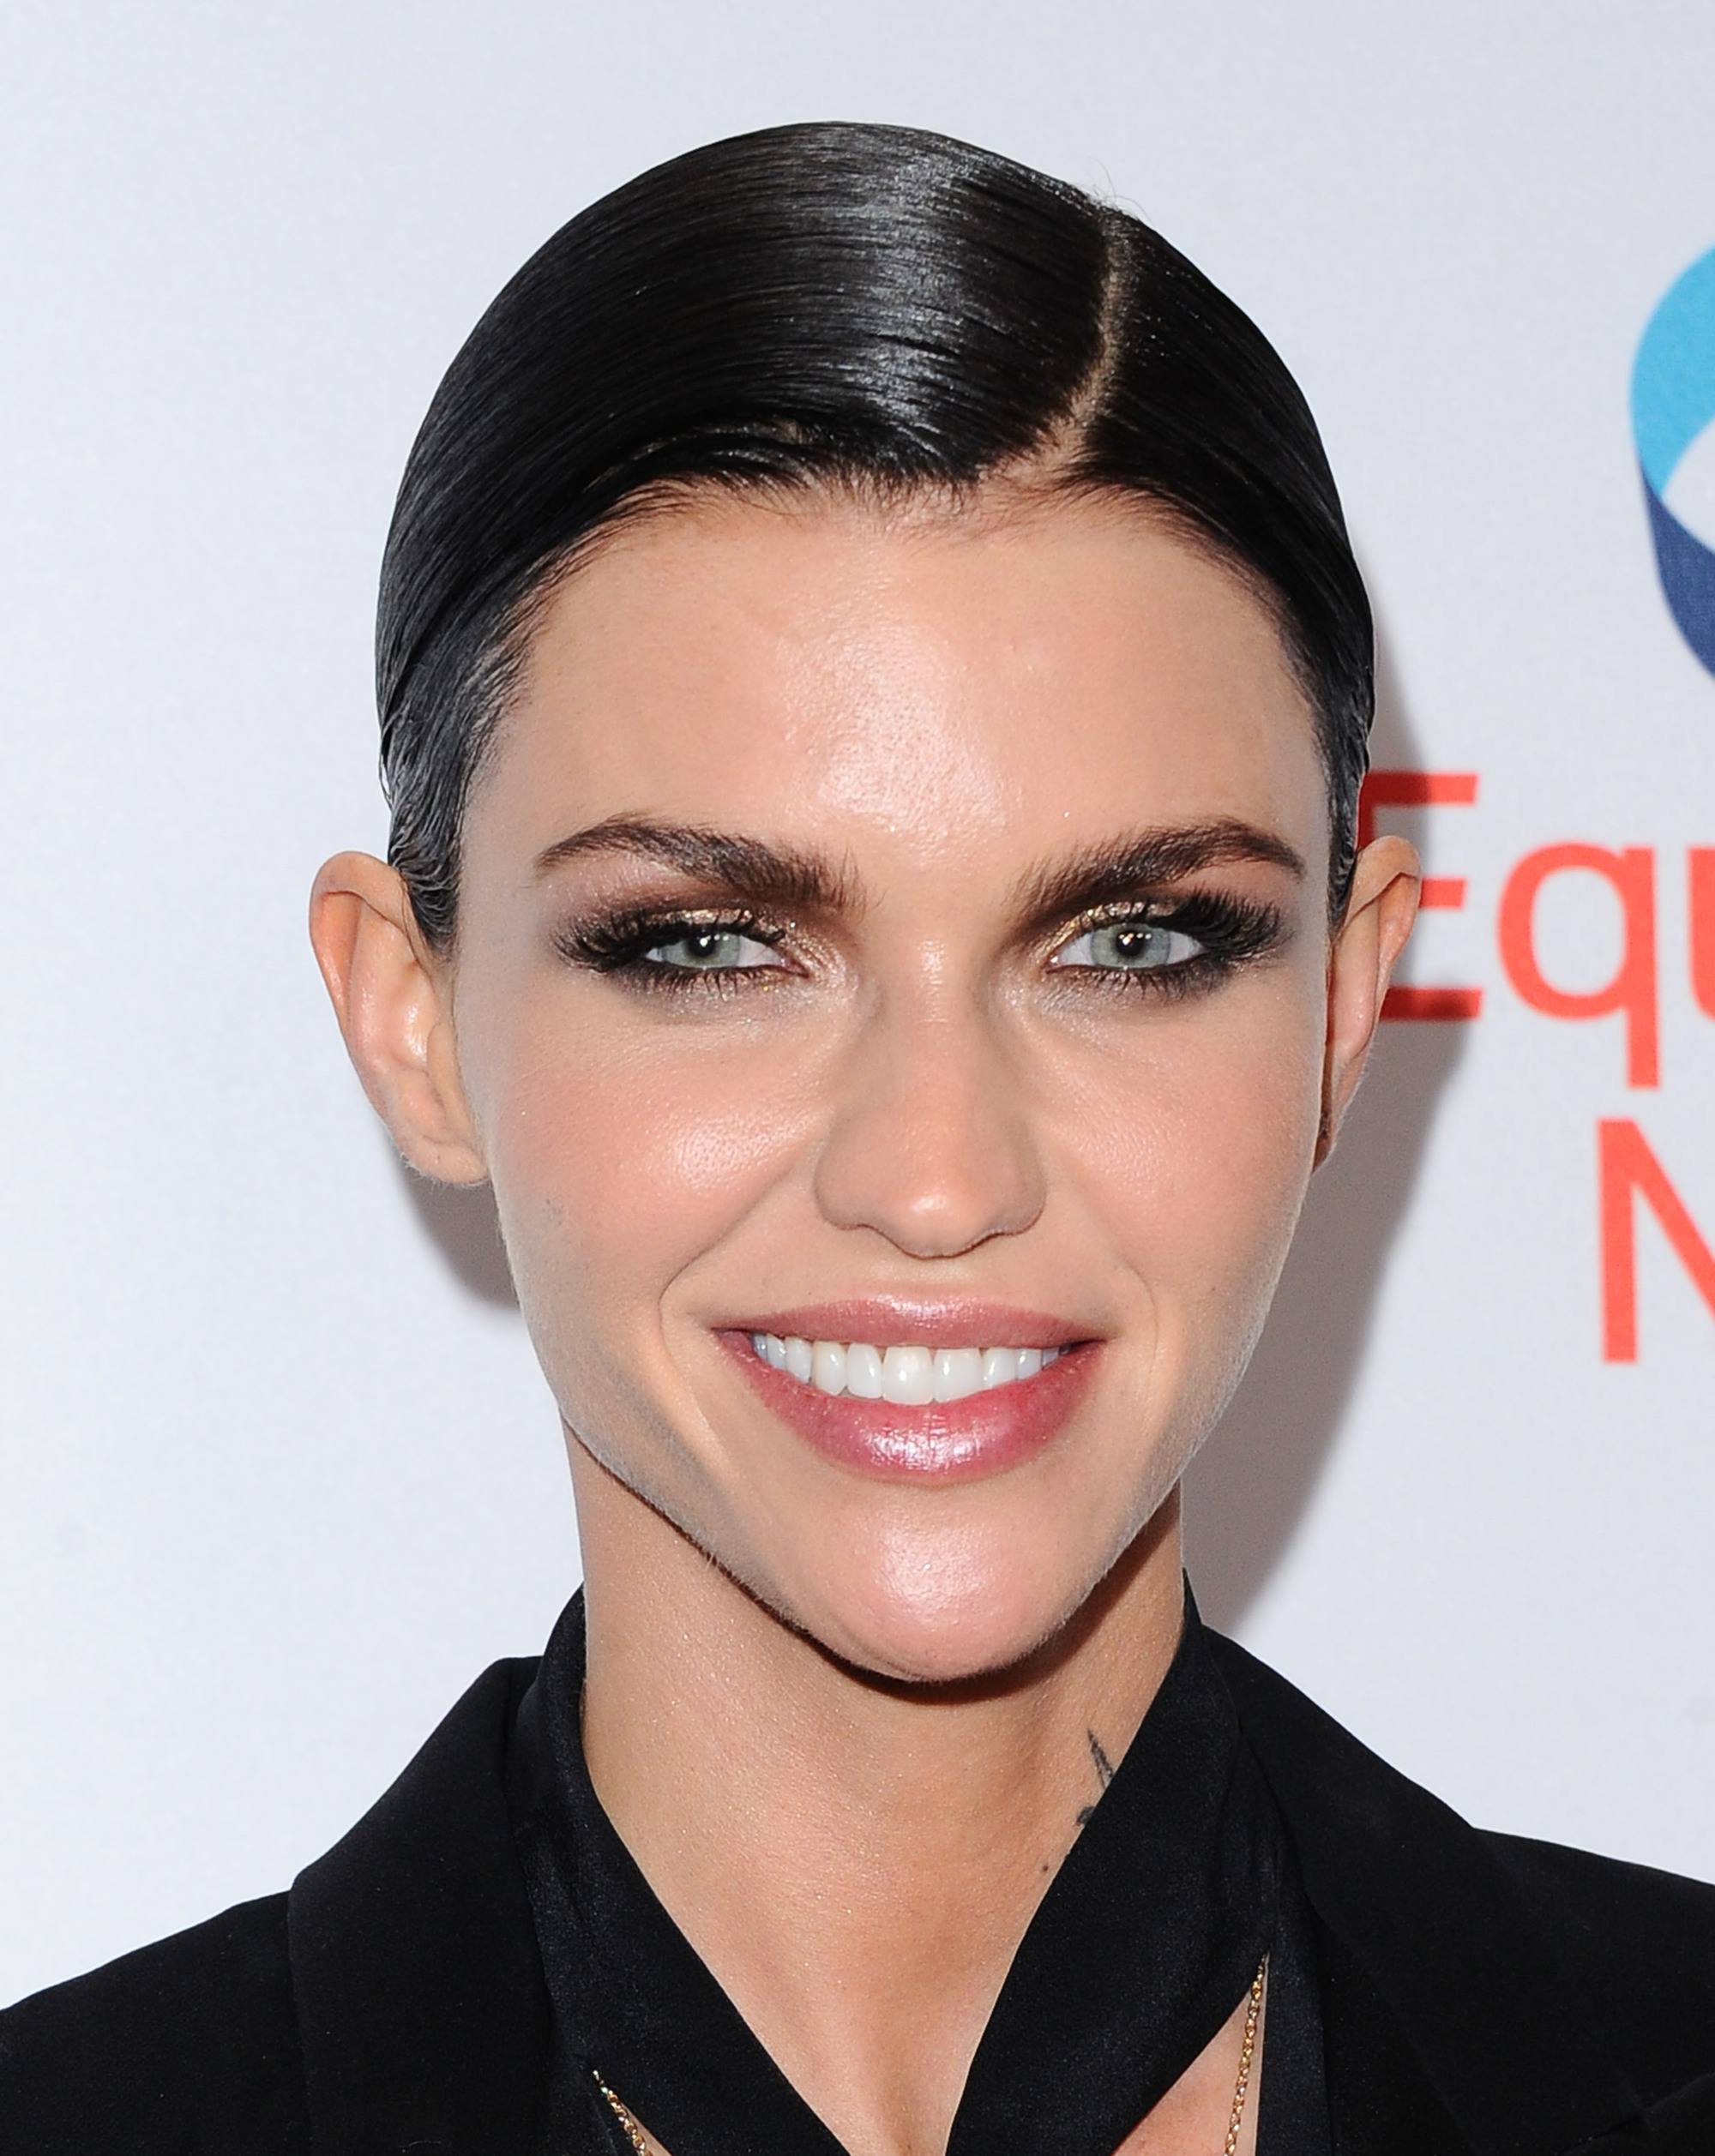 actress ruby rose with short pixie cut hair in a slick side parting